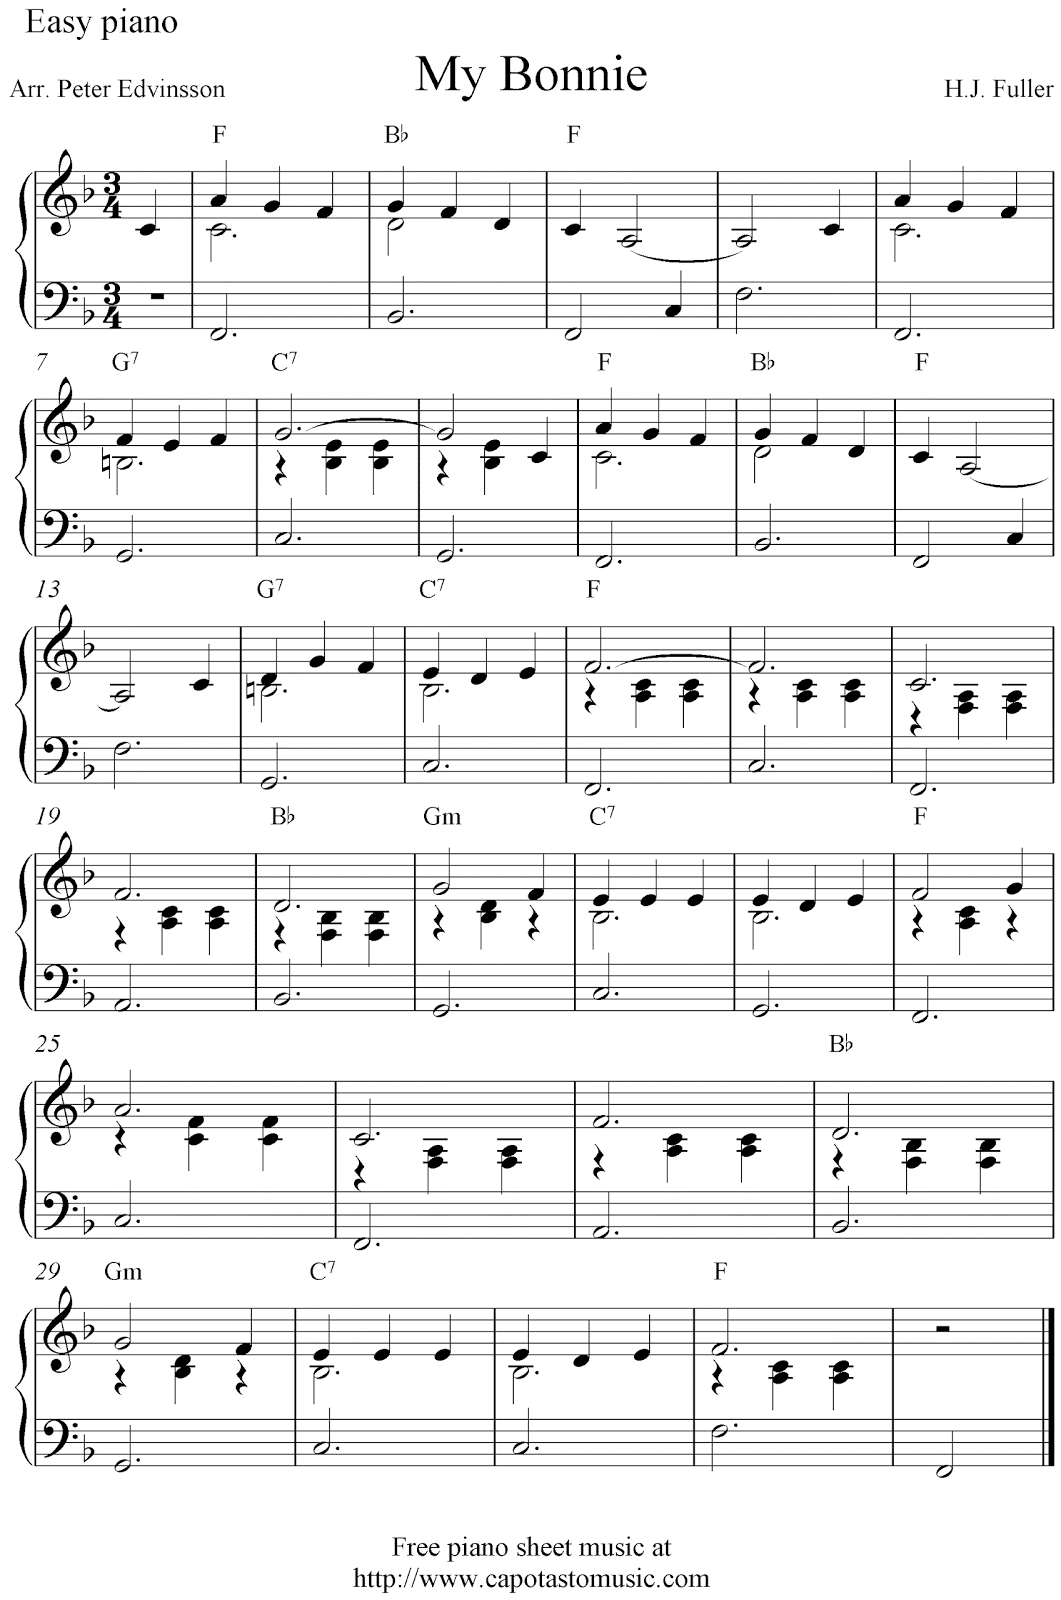 It is an image of Handy Printable Piano Sheet Music Free